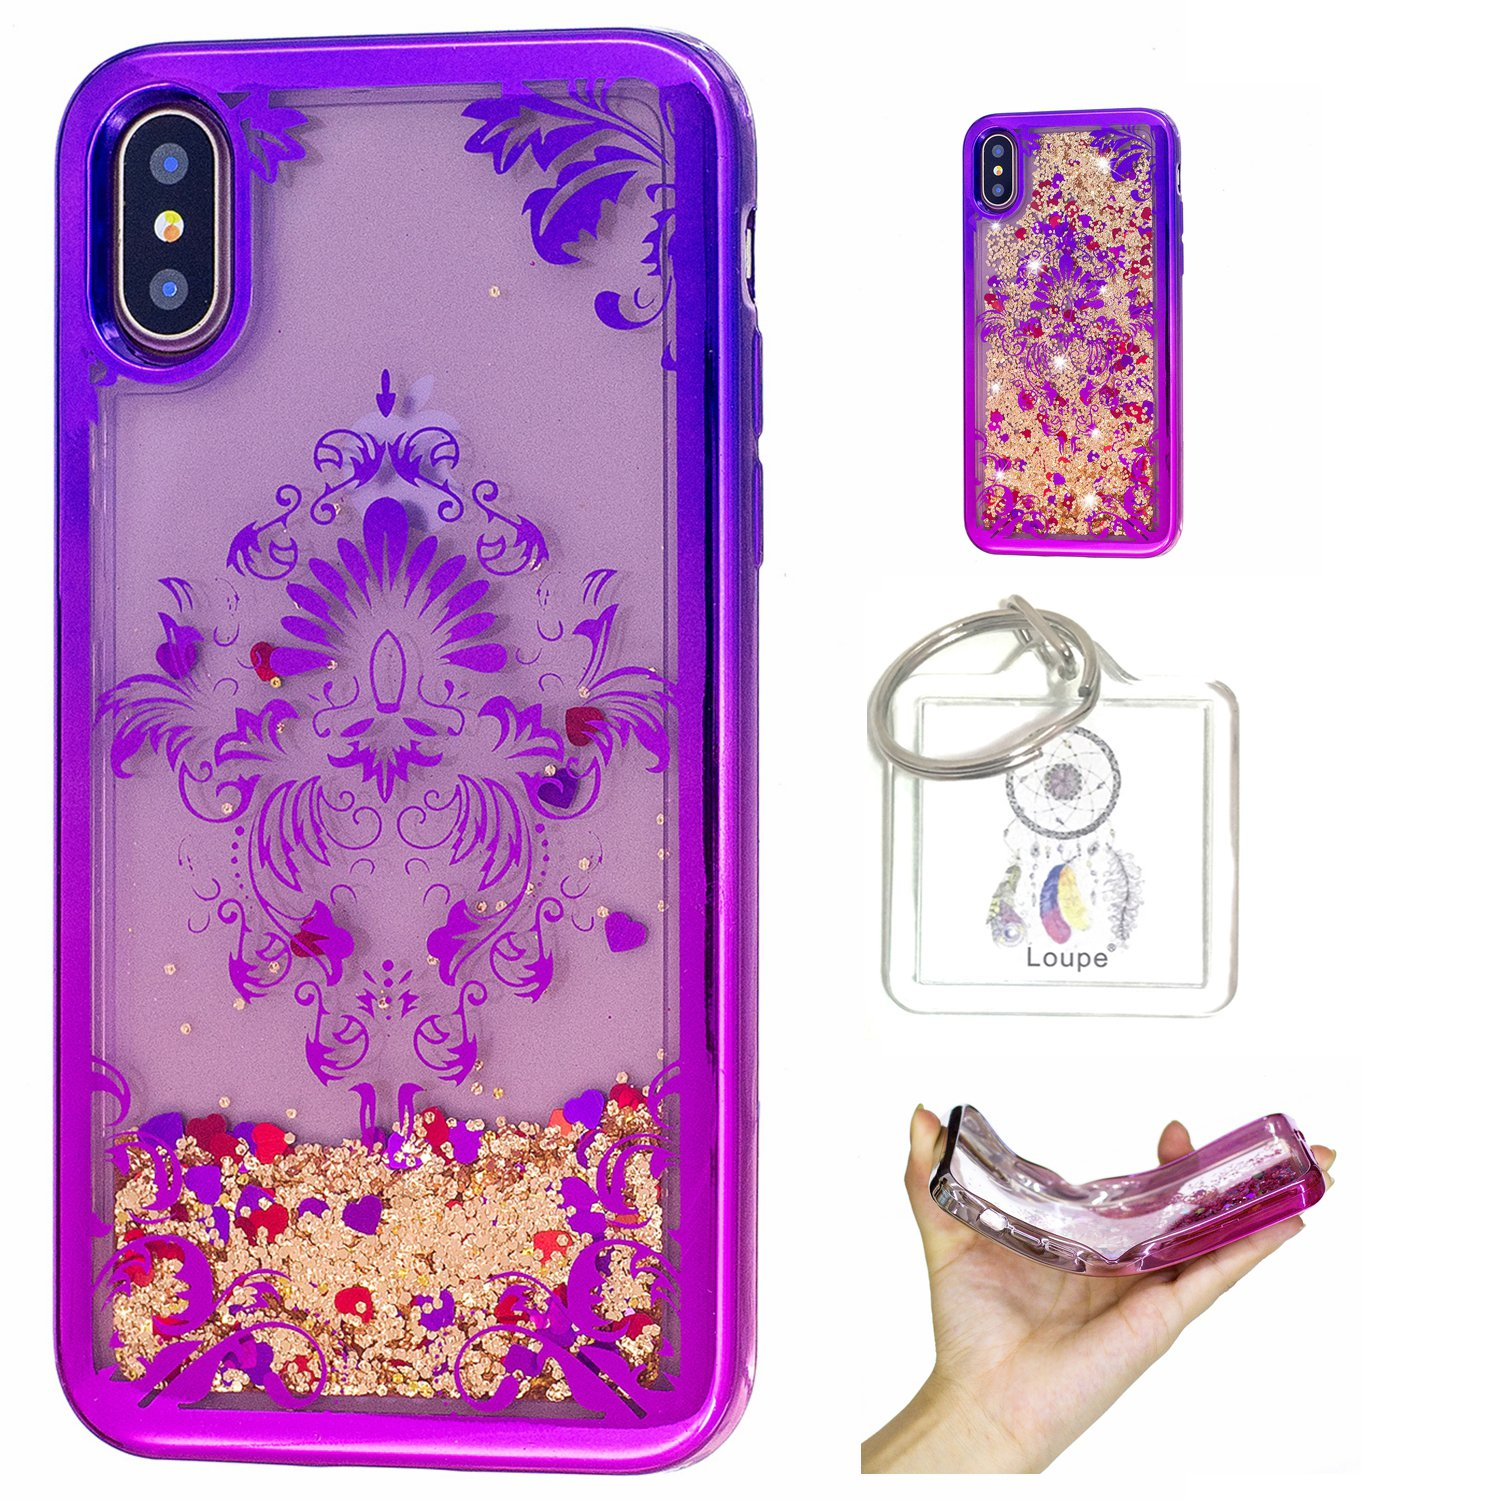 Coque iPhone X Coque Gel Transparent É tui de Protection en TPU Souple Silicone Liquide Bling Pé tillant Gratuit Paillettes Sables Mouvants + porte-clé s (R) Lohpe